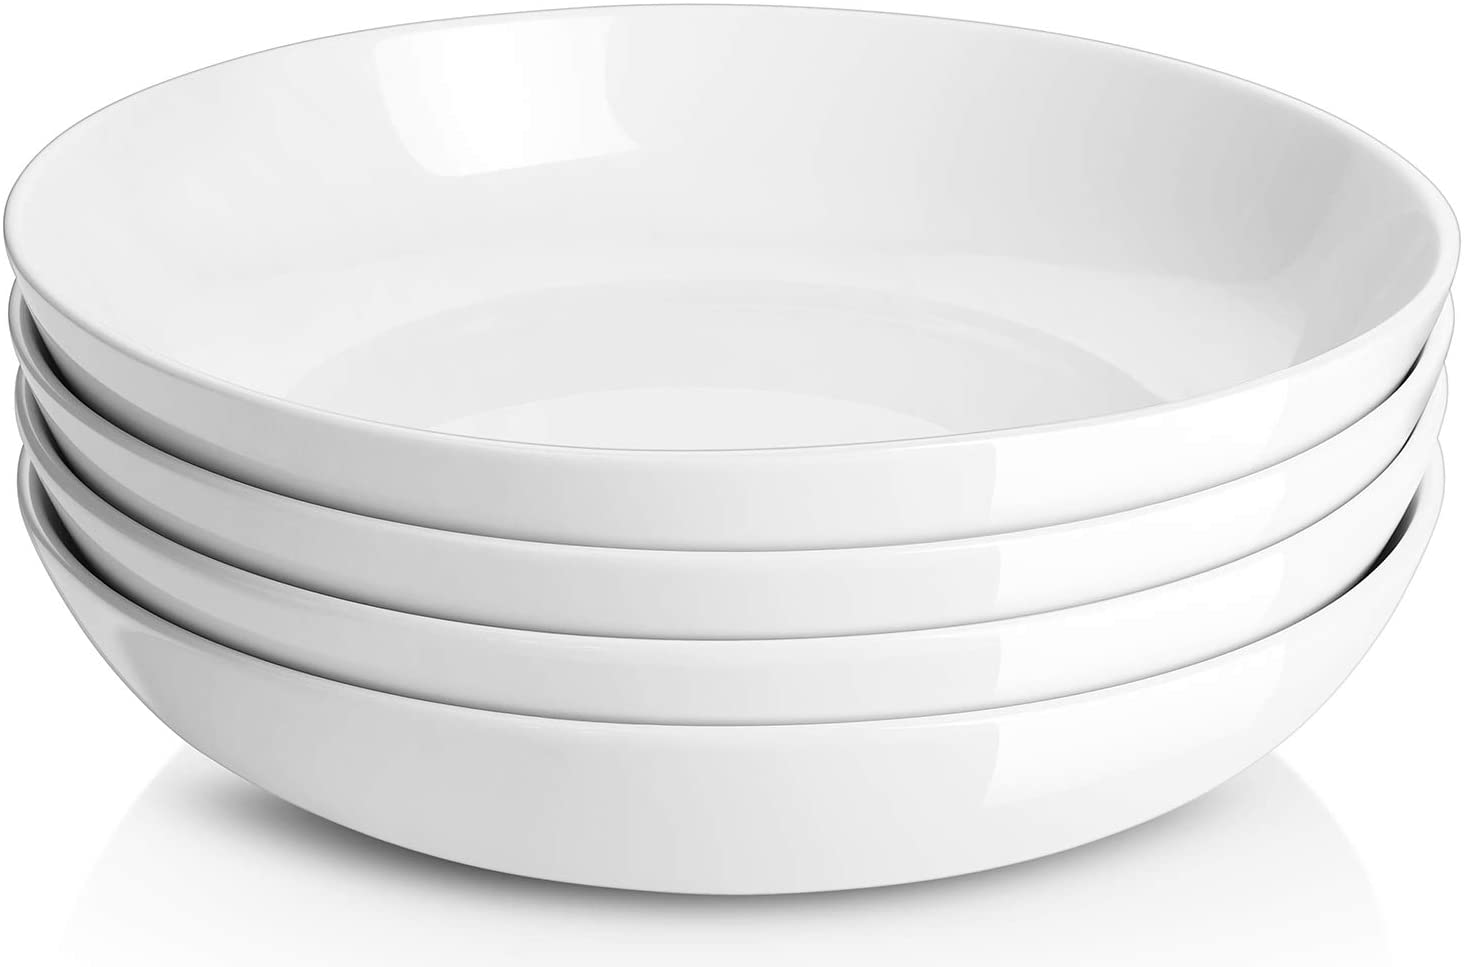 Y Yhy 9 75 Large Pasta Bowls 50 Ounces Big Salad Bowls Ceramic Serving Bowl Set Of 4 Wide And Shallow Plates And Bowls Set Microwave And Dishwasher Safe White Kitchen